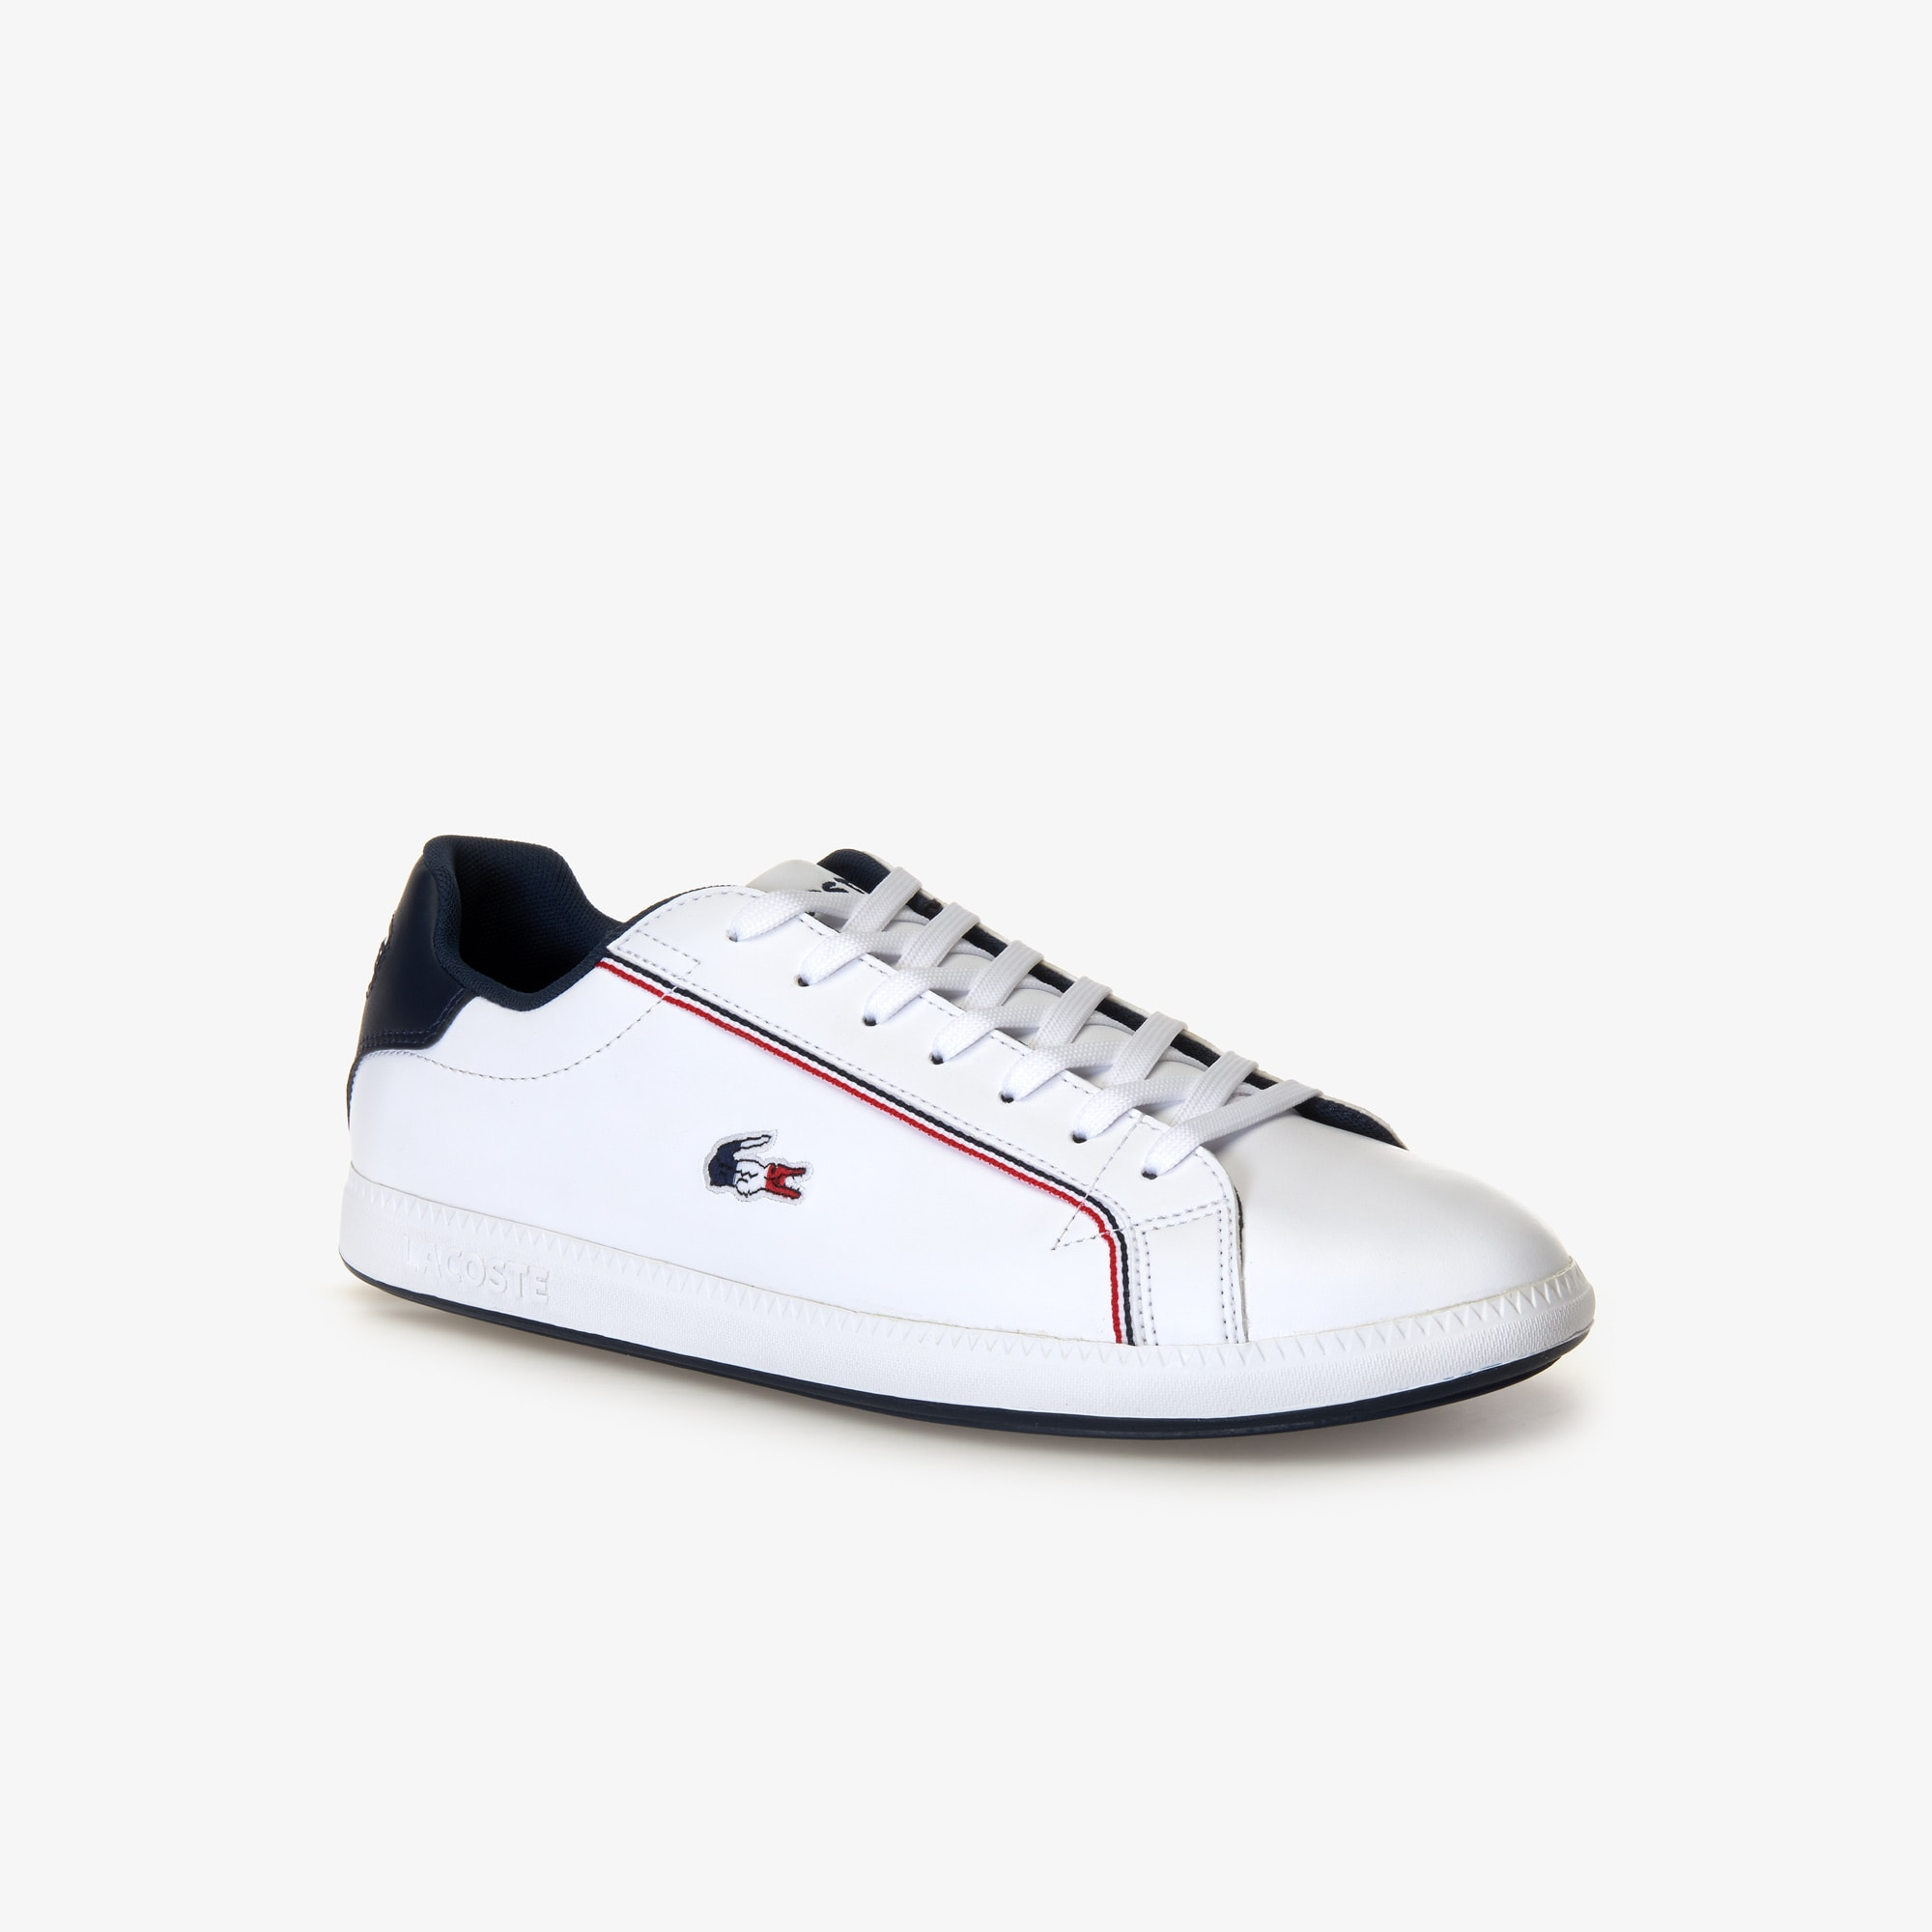 Men's Graduate Leather Tricolore Sneakers